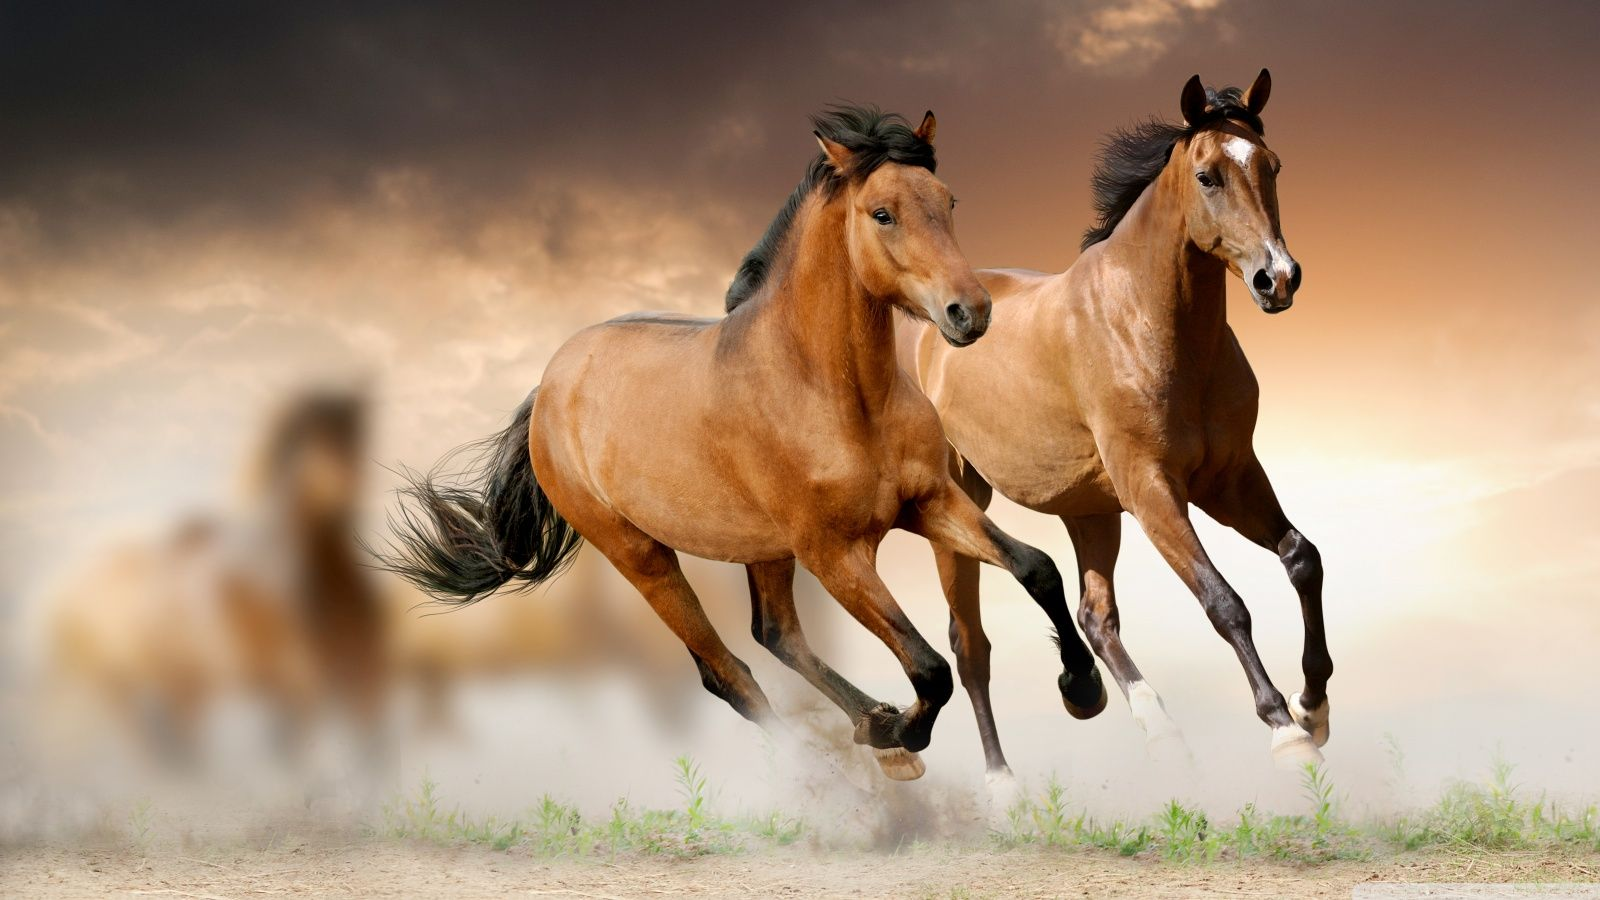 Outstanding Horse Pictures To Share Horses Hd Wallpapers Great Horses Hd Animal Wallpapers Horse Wallpaper Wild Horses Running Beautiful Horses